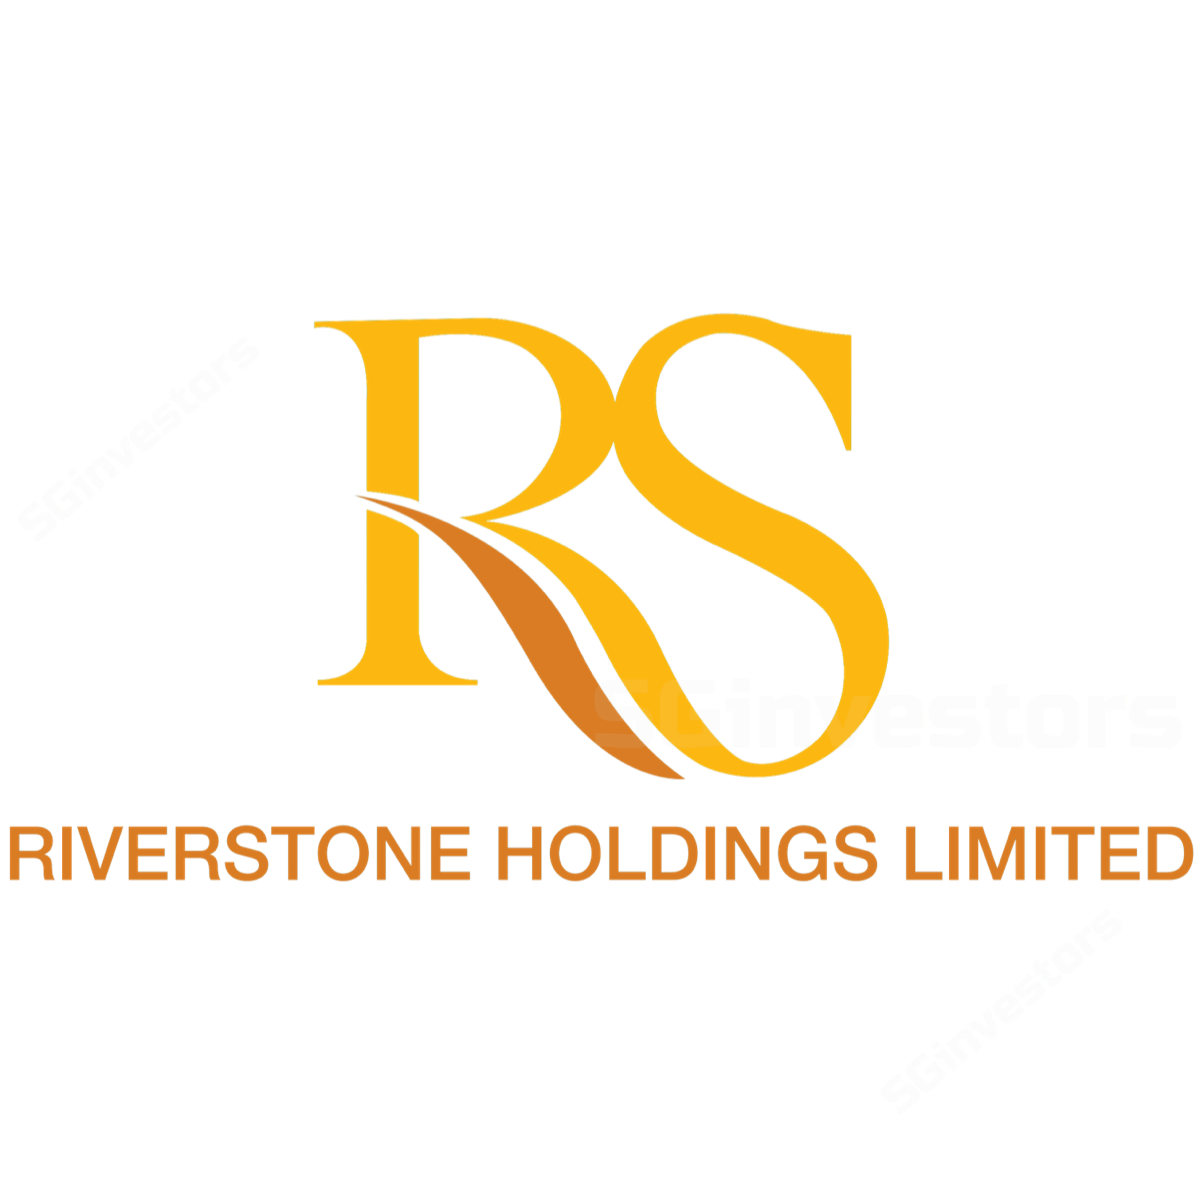 Riverstone Holdings (RSTON SP) - DBS Vickers 2017-11-09: Firm Earnings Recovery In 3Q17 Despite Temporary Hiccup